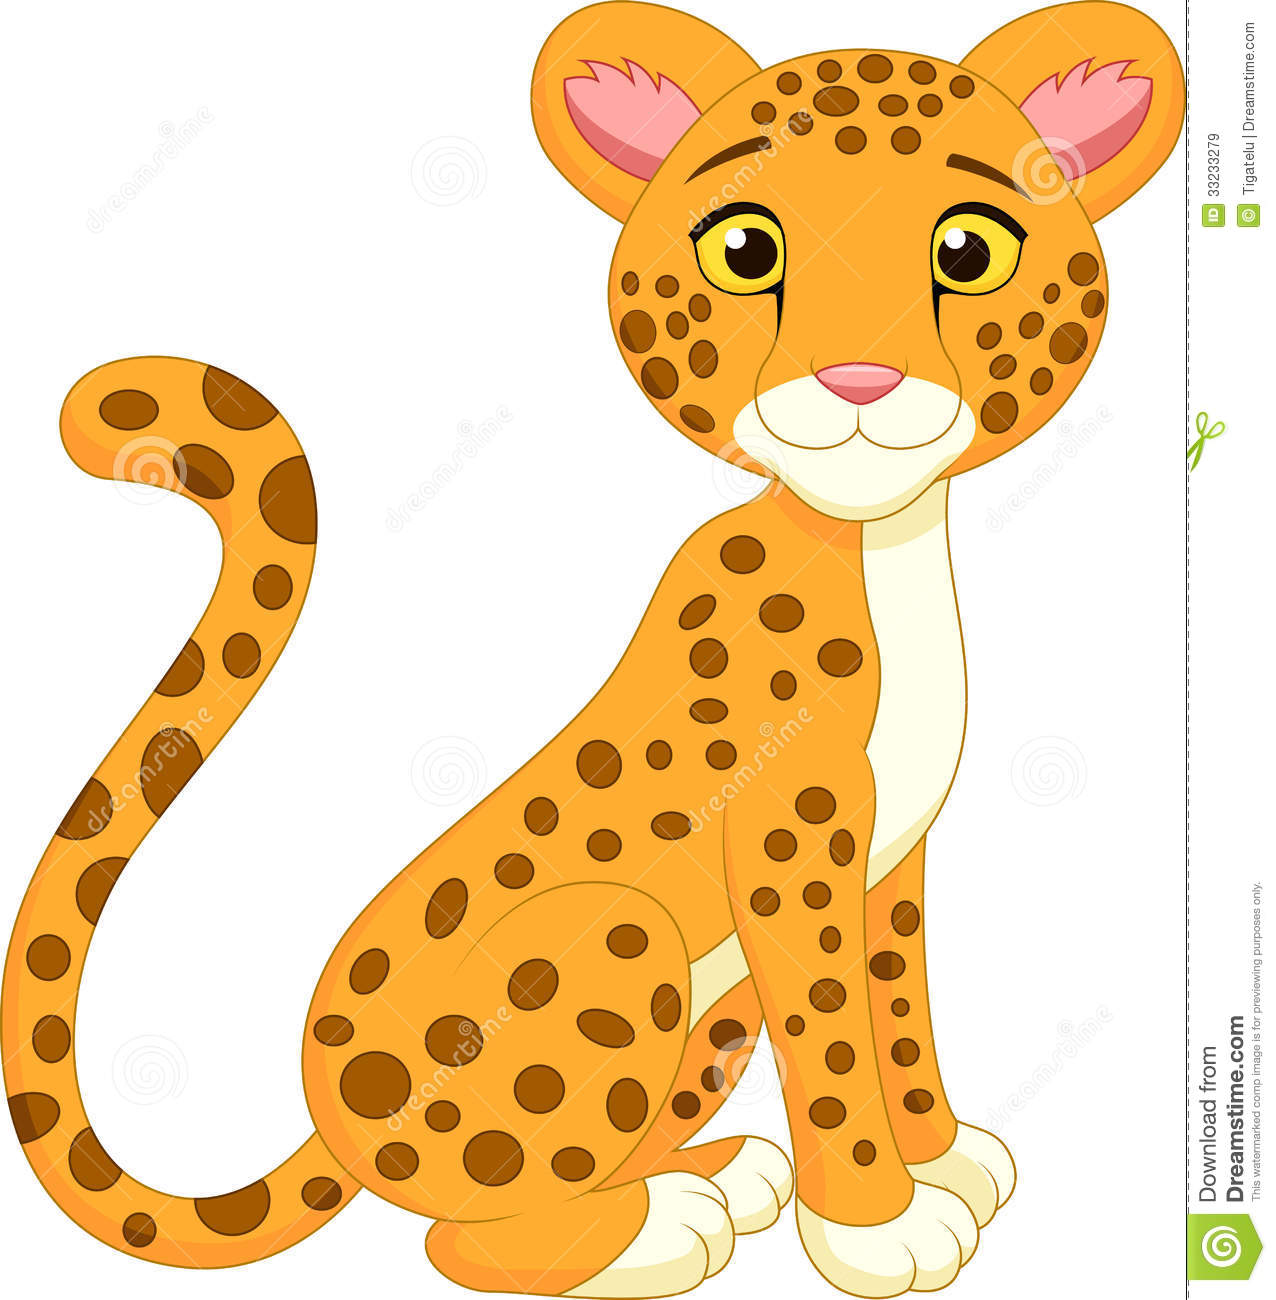 Cartoon Leopard Clipart - Clipart Kid